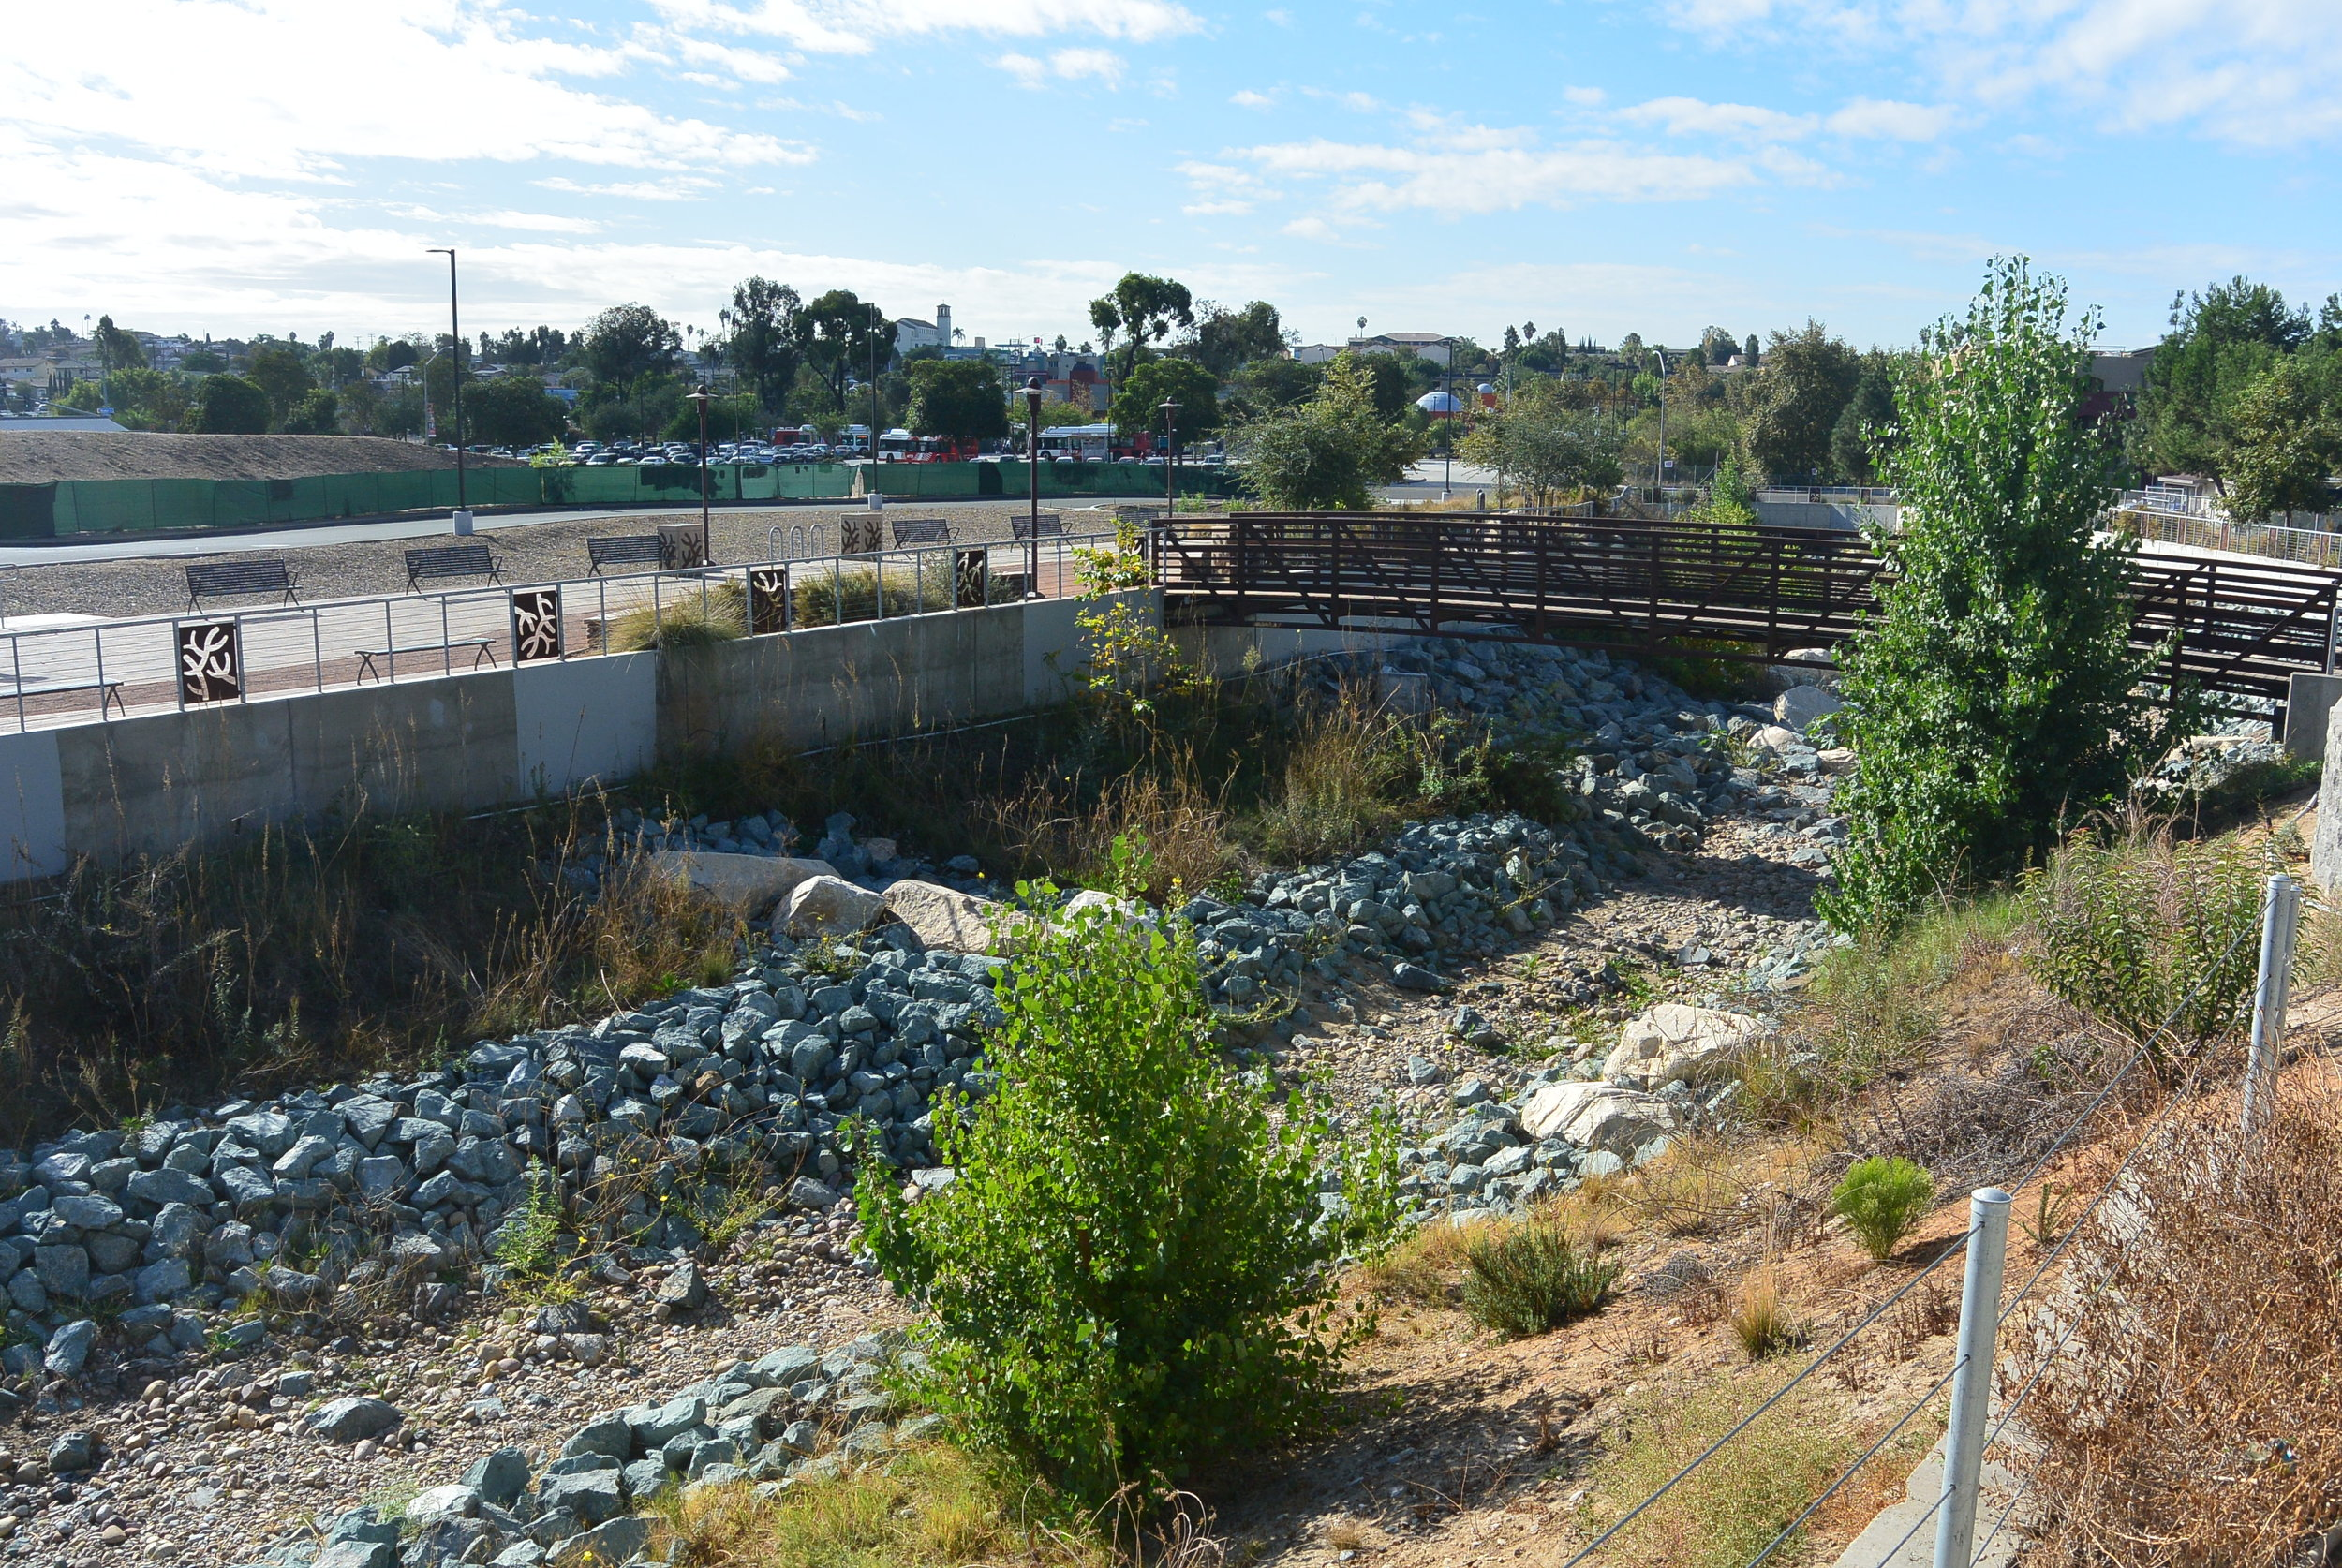 Chollas Creek Restoration Project (Landscape Architecture)  This project brought together the community by creating a gathering space that encourages getting outside and sustainable development.  *Click the image for more information on the project